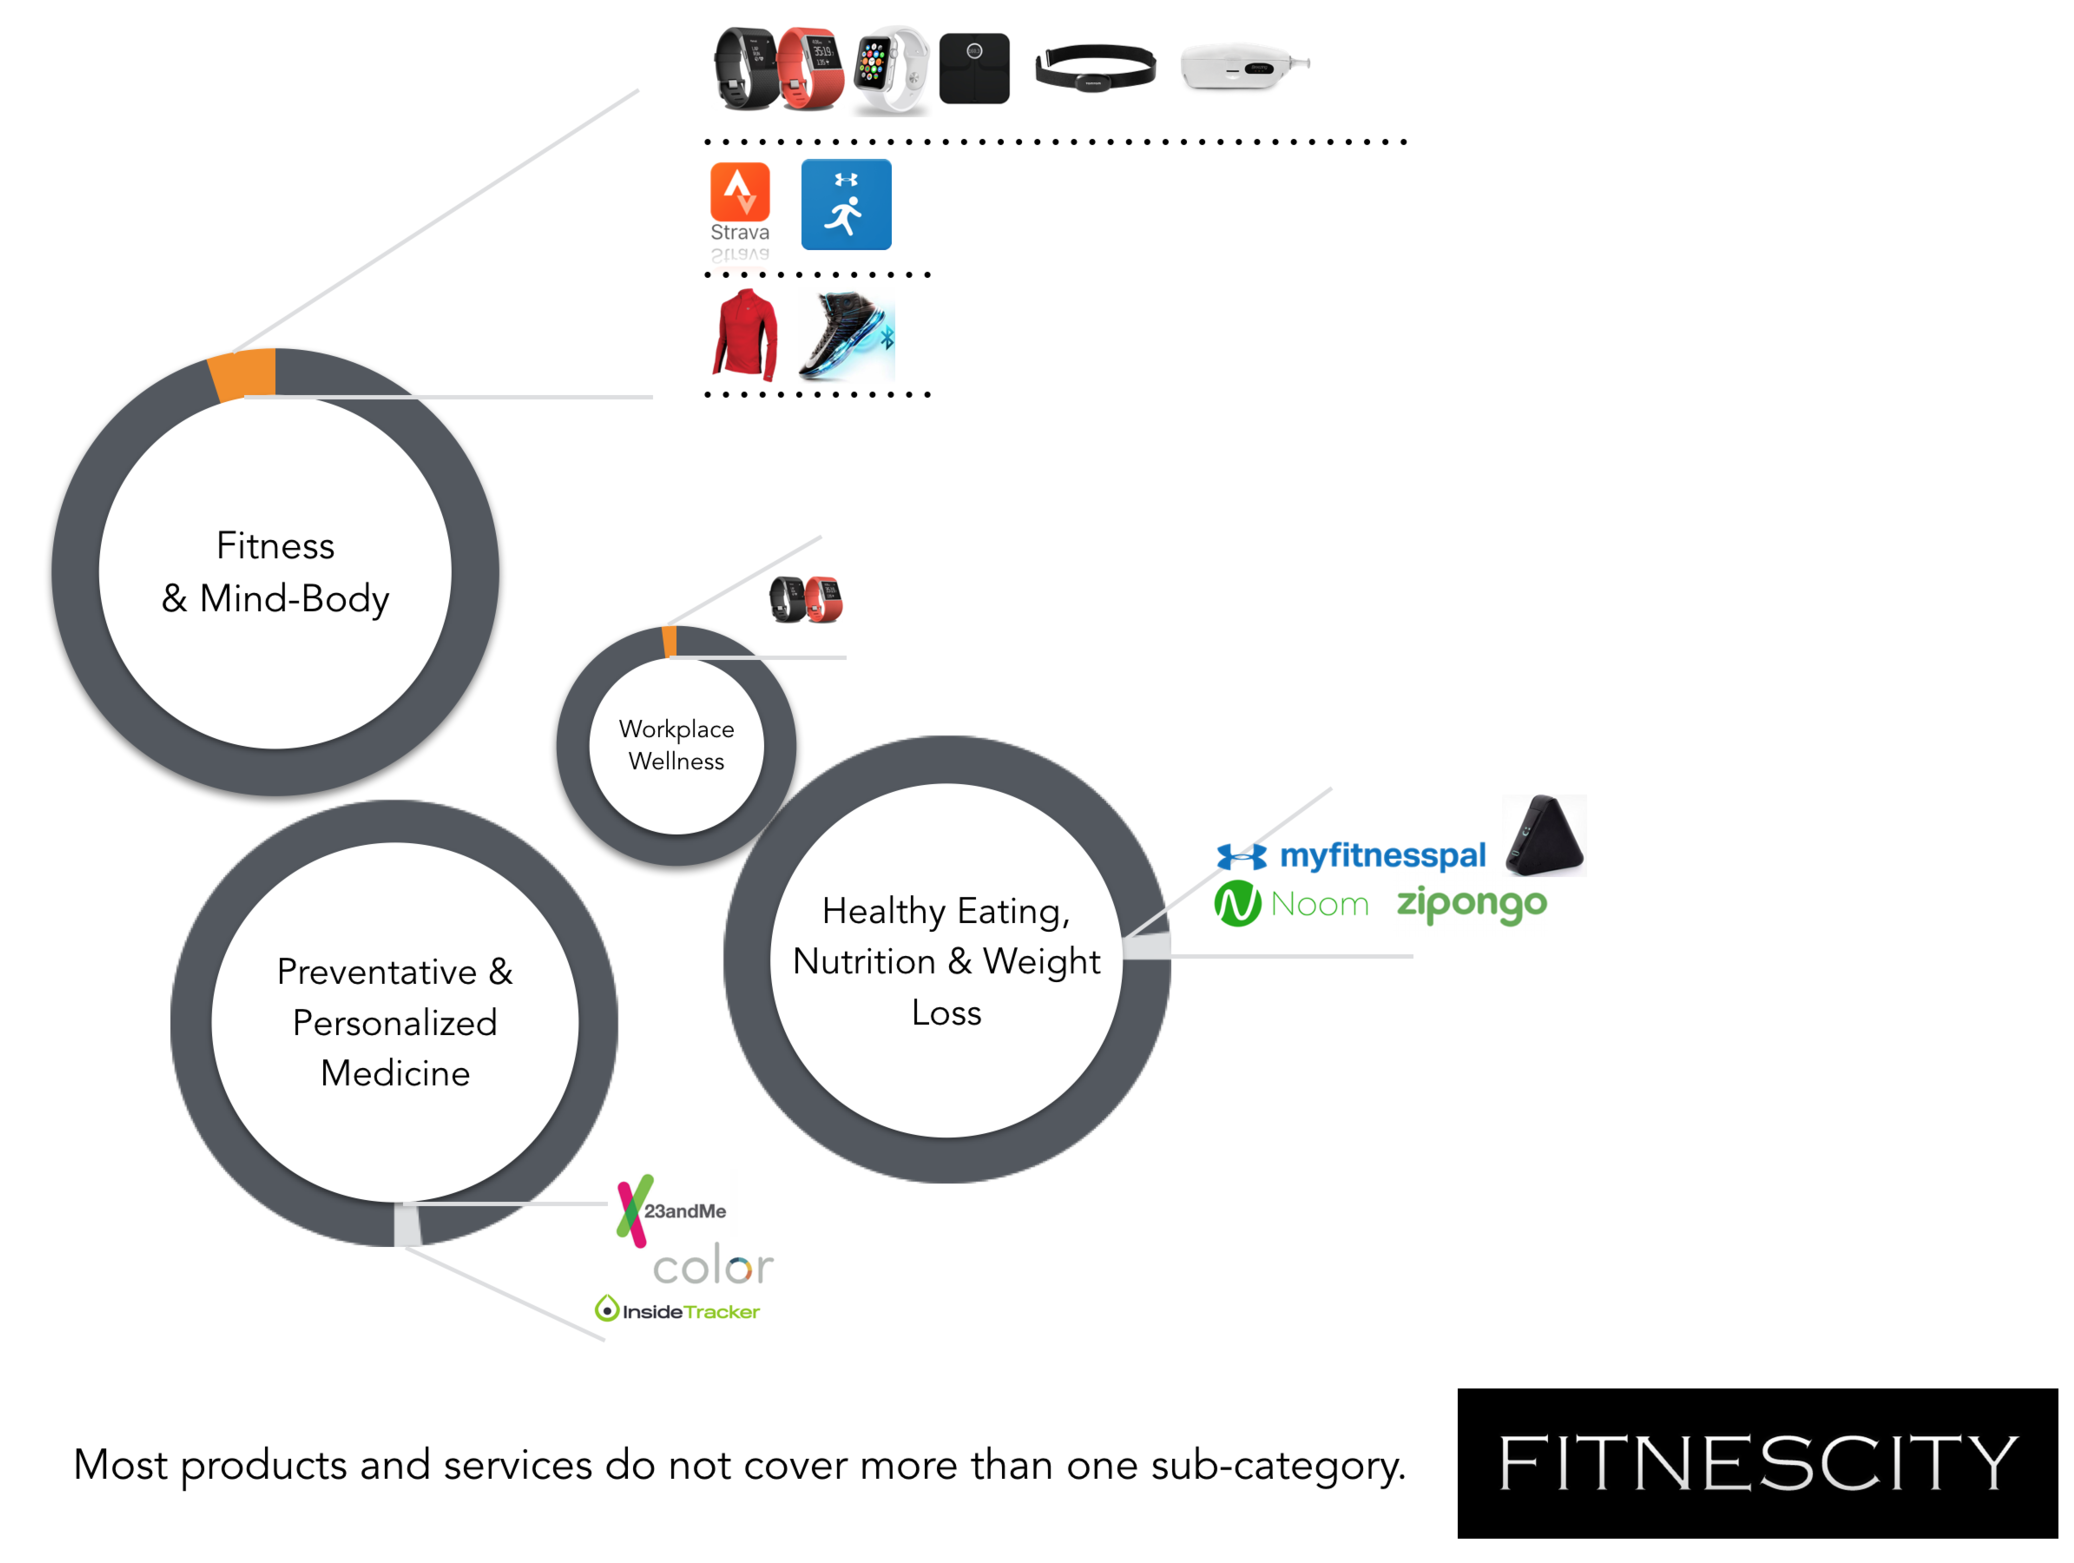 Personalized, Data-Driven Wellness is a Fragmented Industry